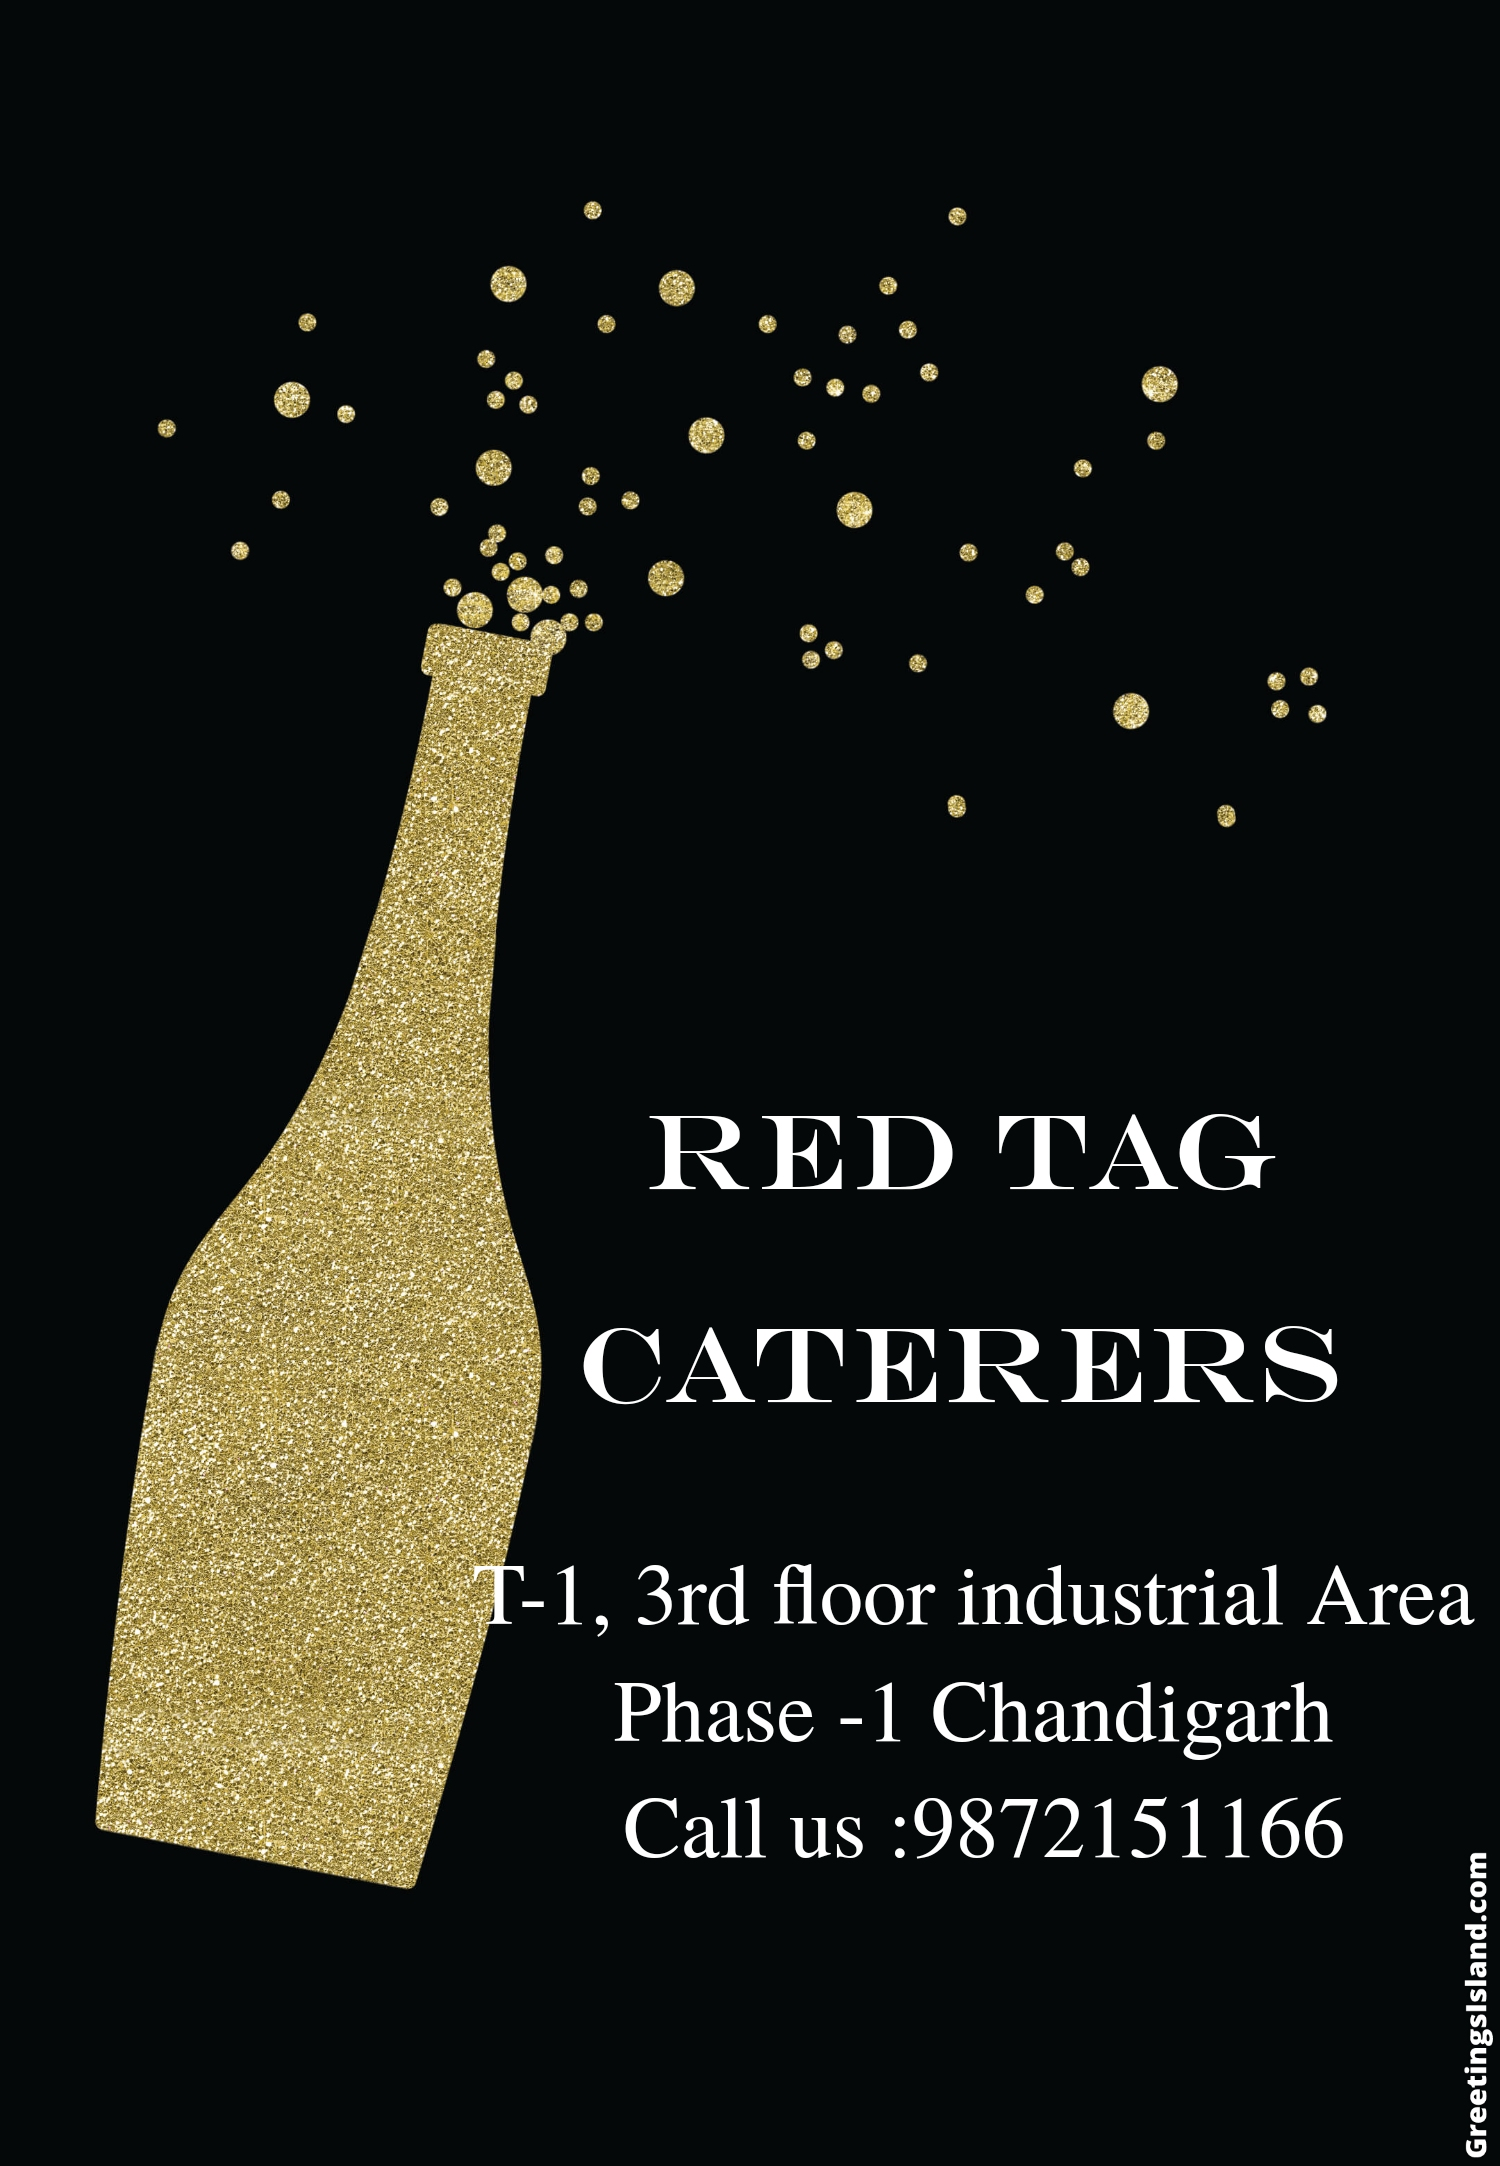 Red Tag Caterers, Perfect Caterer in panchkula,  government authorised catering in panchkula, one of the best caterers in panchkula, leading catering service in panchkula